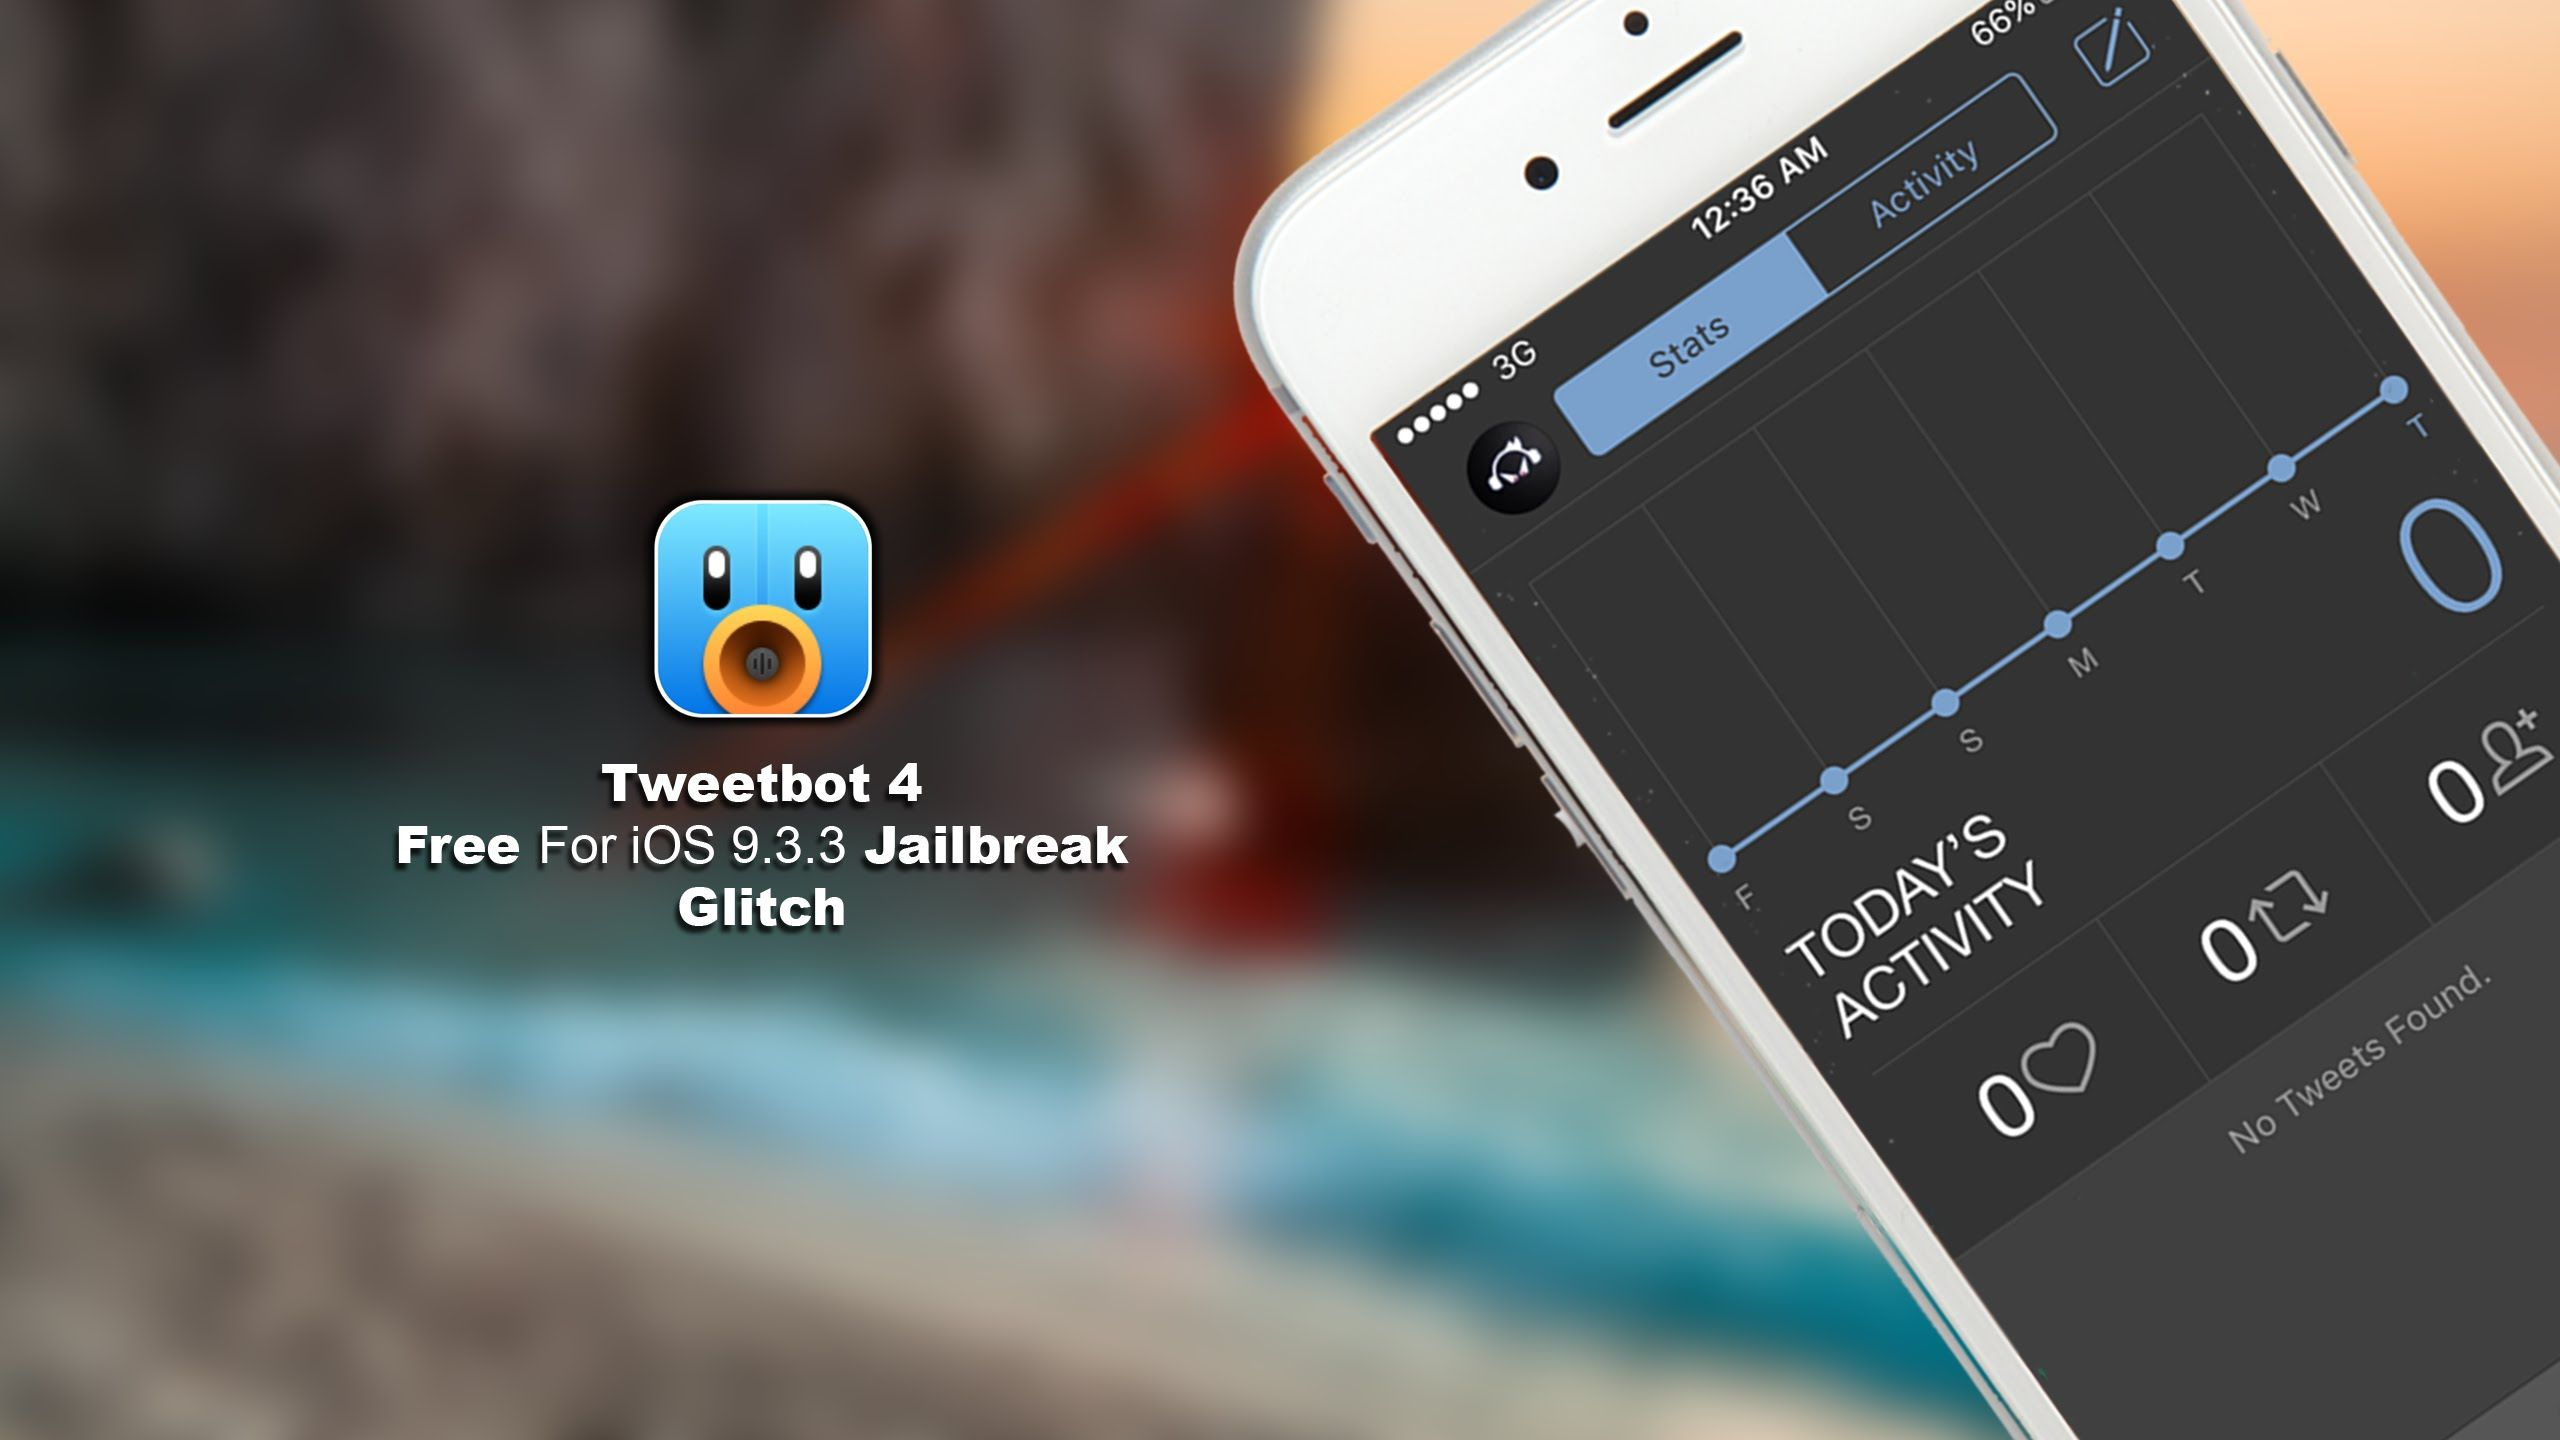 NEW] Install Tweetbot 4 For Free iOS 9 3 3 Jailbreak Glitch 2016